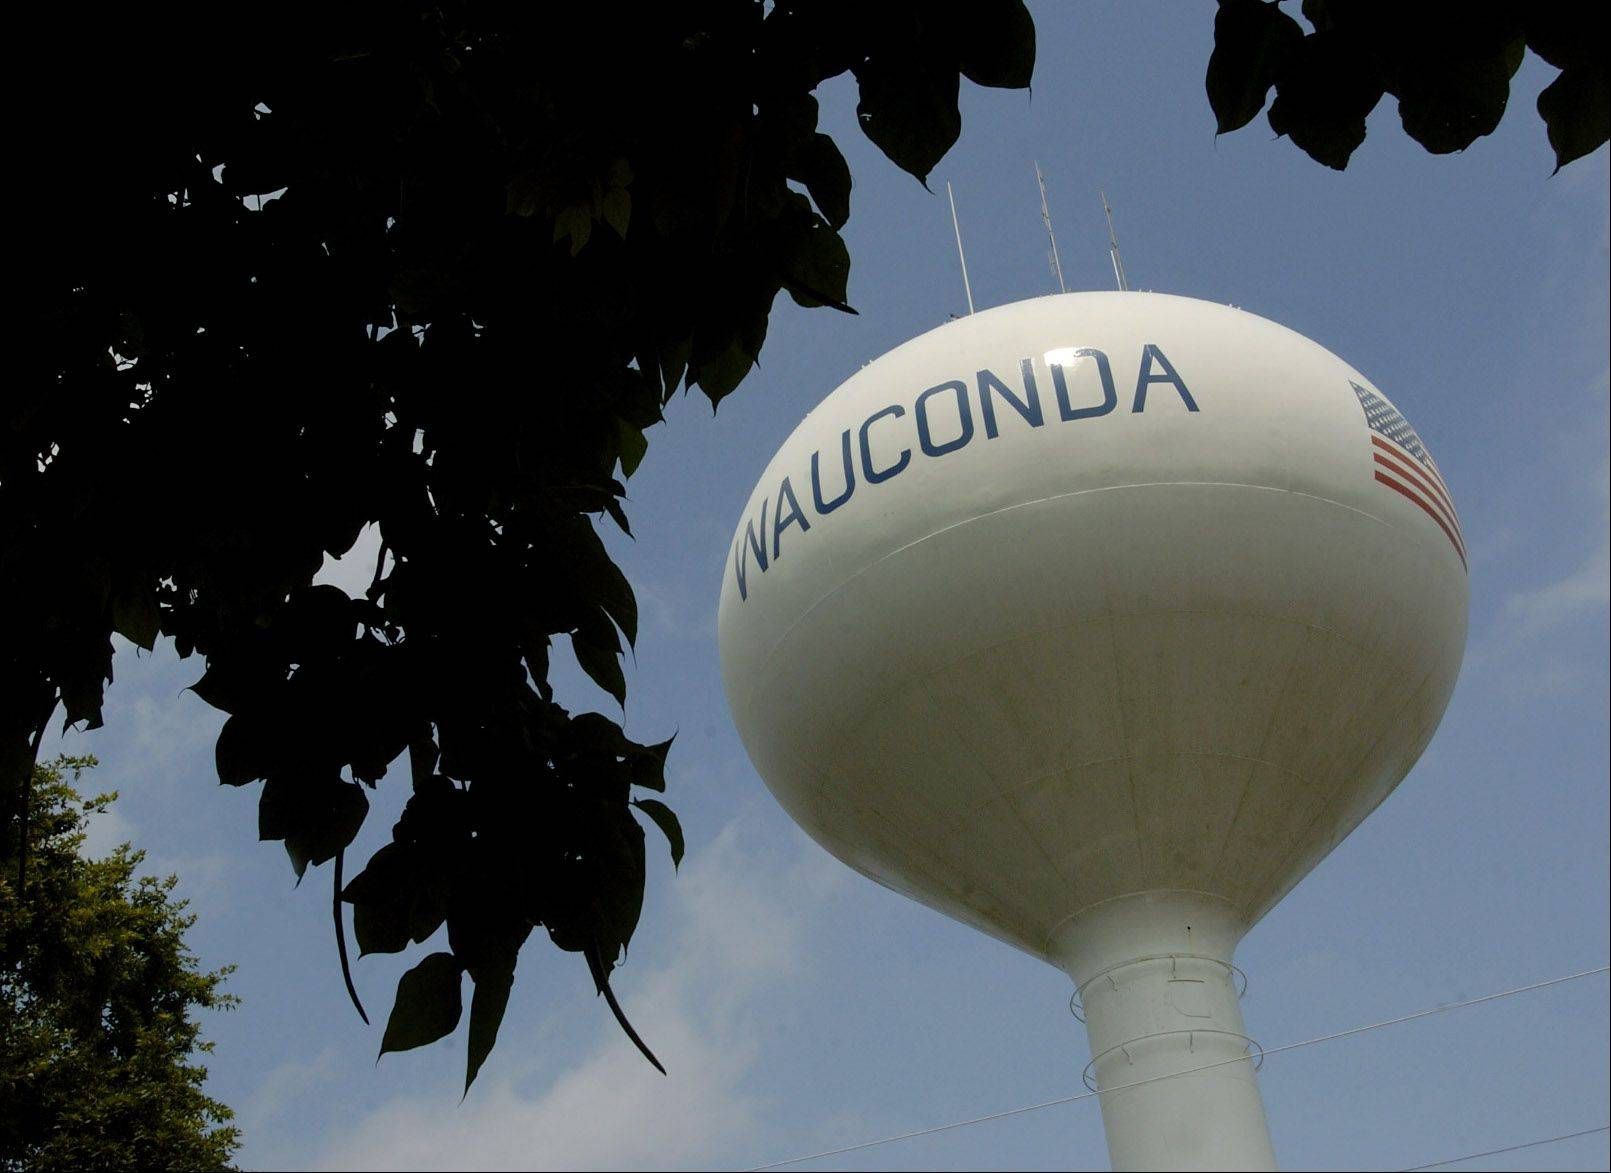 Wauconda officials have until Sept. 18 to approve an agreement with a regional agency for Lake Michigan drinking water. If they don't, the agency says, they'll have to find a different connection to the Great Lake.